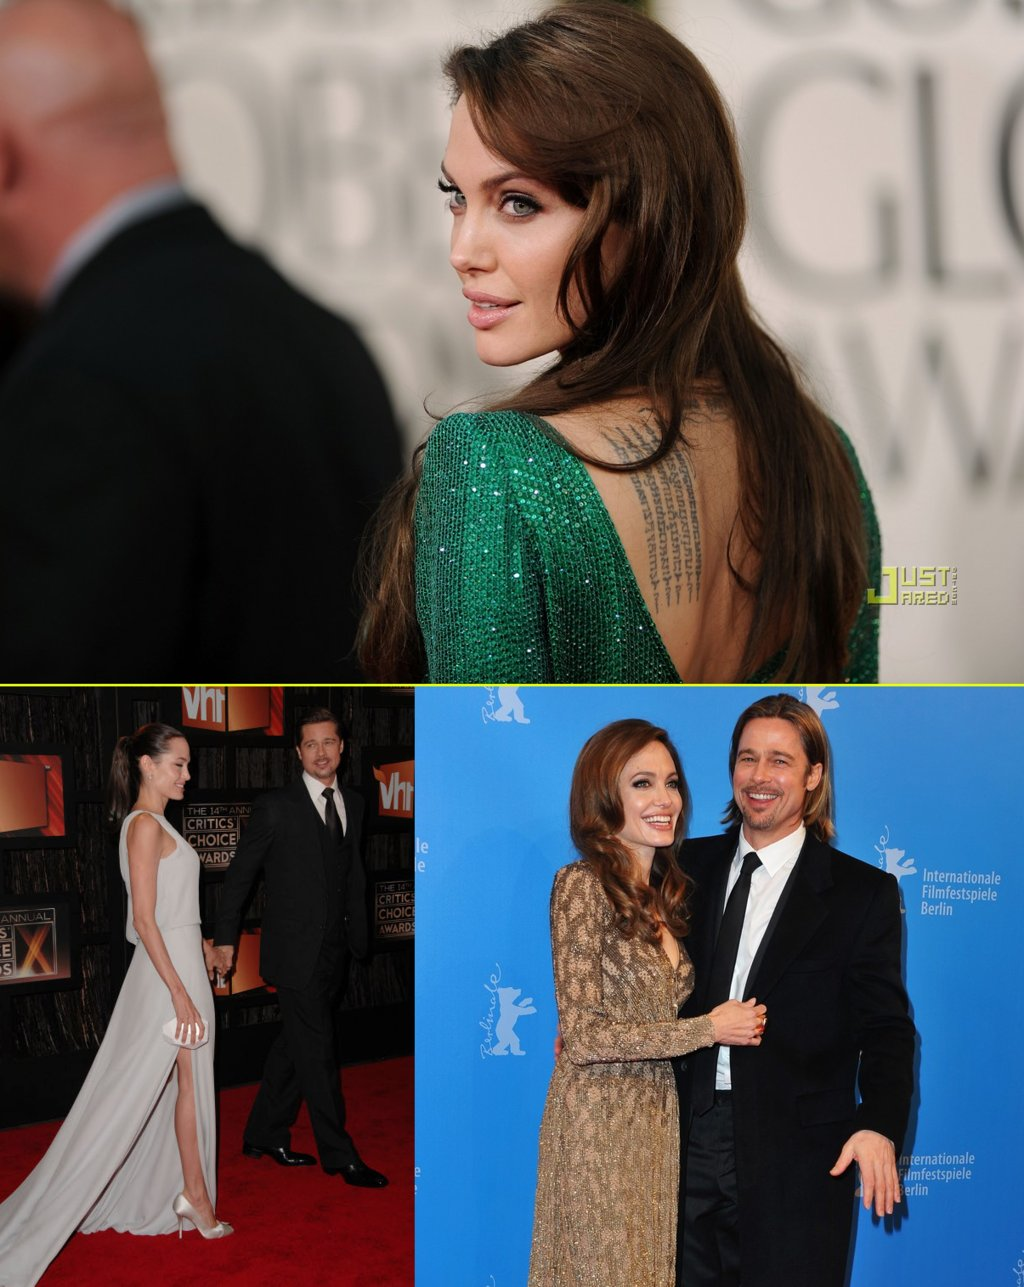 Brad-pitt-angelina-jolie-wedding-rumors-august-2012-celebrity-weddings.full